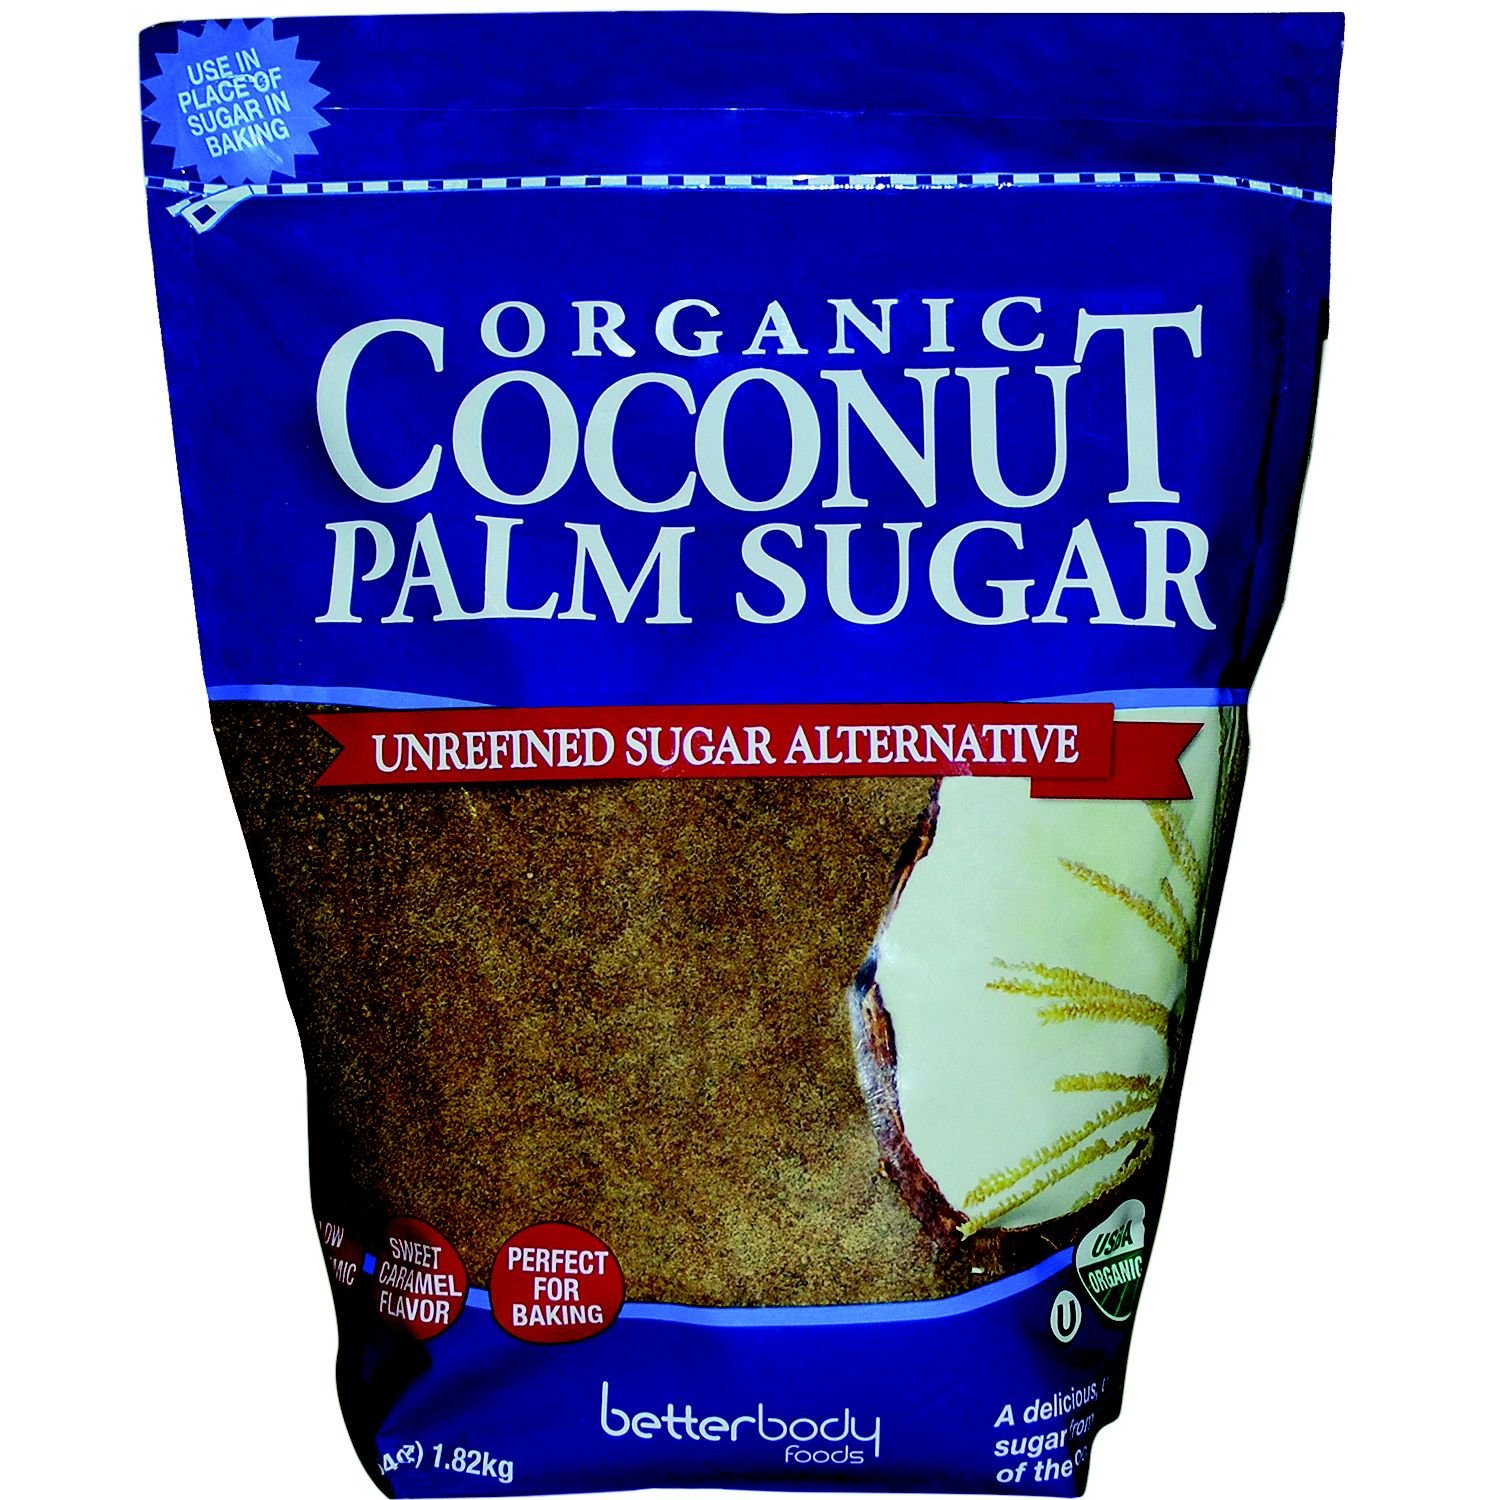 BetterBody Foods Organic Coconut Palm Sugar (4 lbs.)